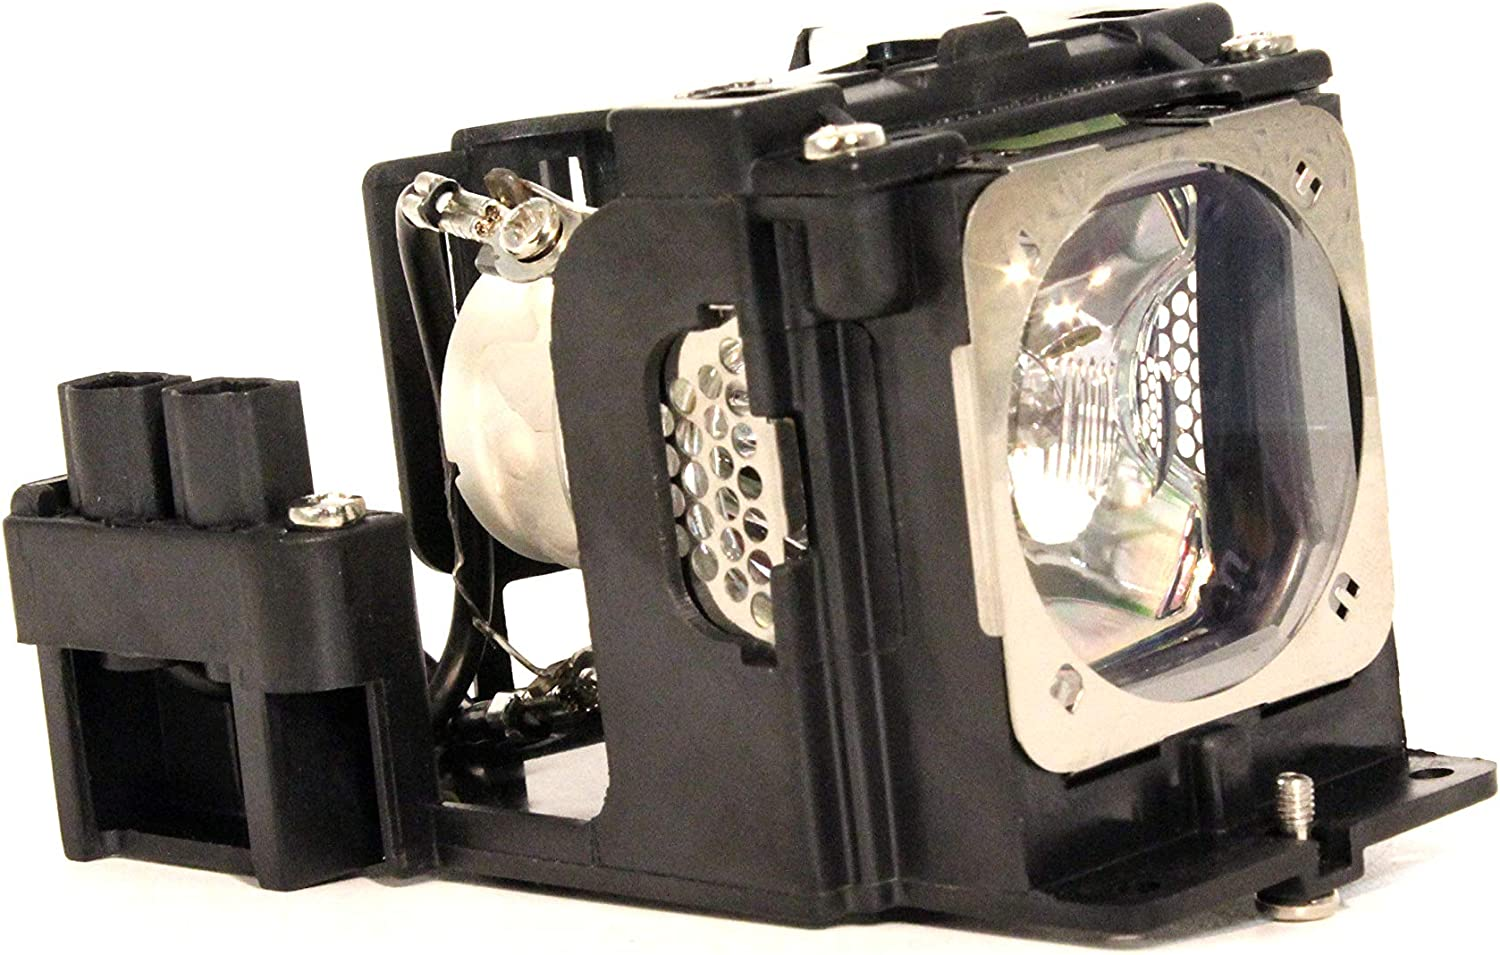 Emazne POA-LMP90/POA-LMP106 Projector Replacement Compatible Lamp with Housing for Eiki LC-SB22 Eiki LC-XB23 Eiki LC-XB23C Eiki LC-XB24 Eiki LC-XB27N Eiki LC-XB29N Eiki LC-XB31 Eiki LC-XB33